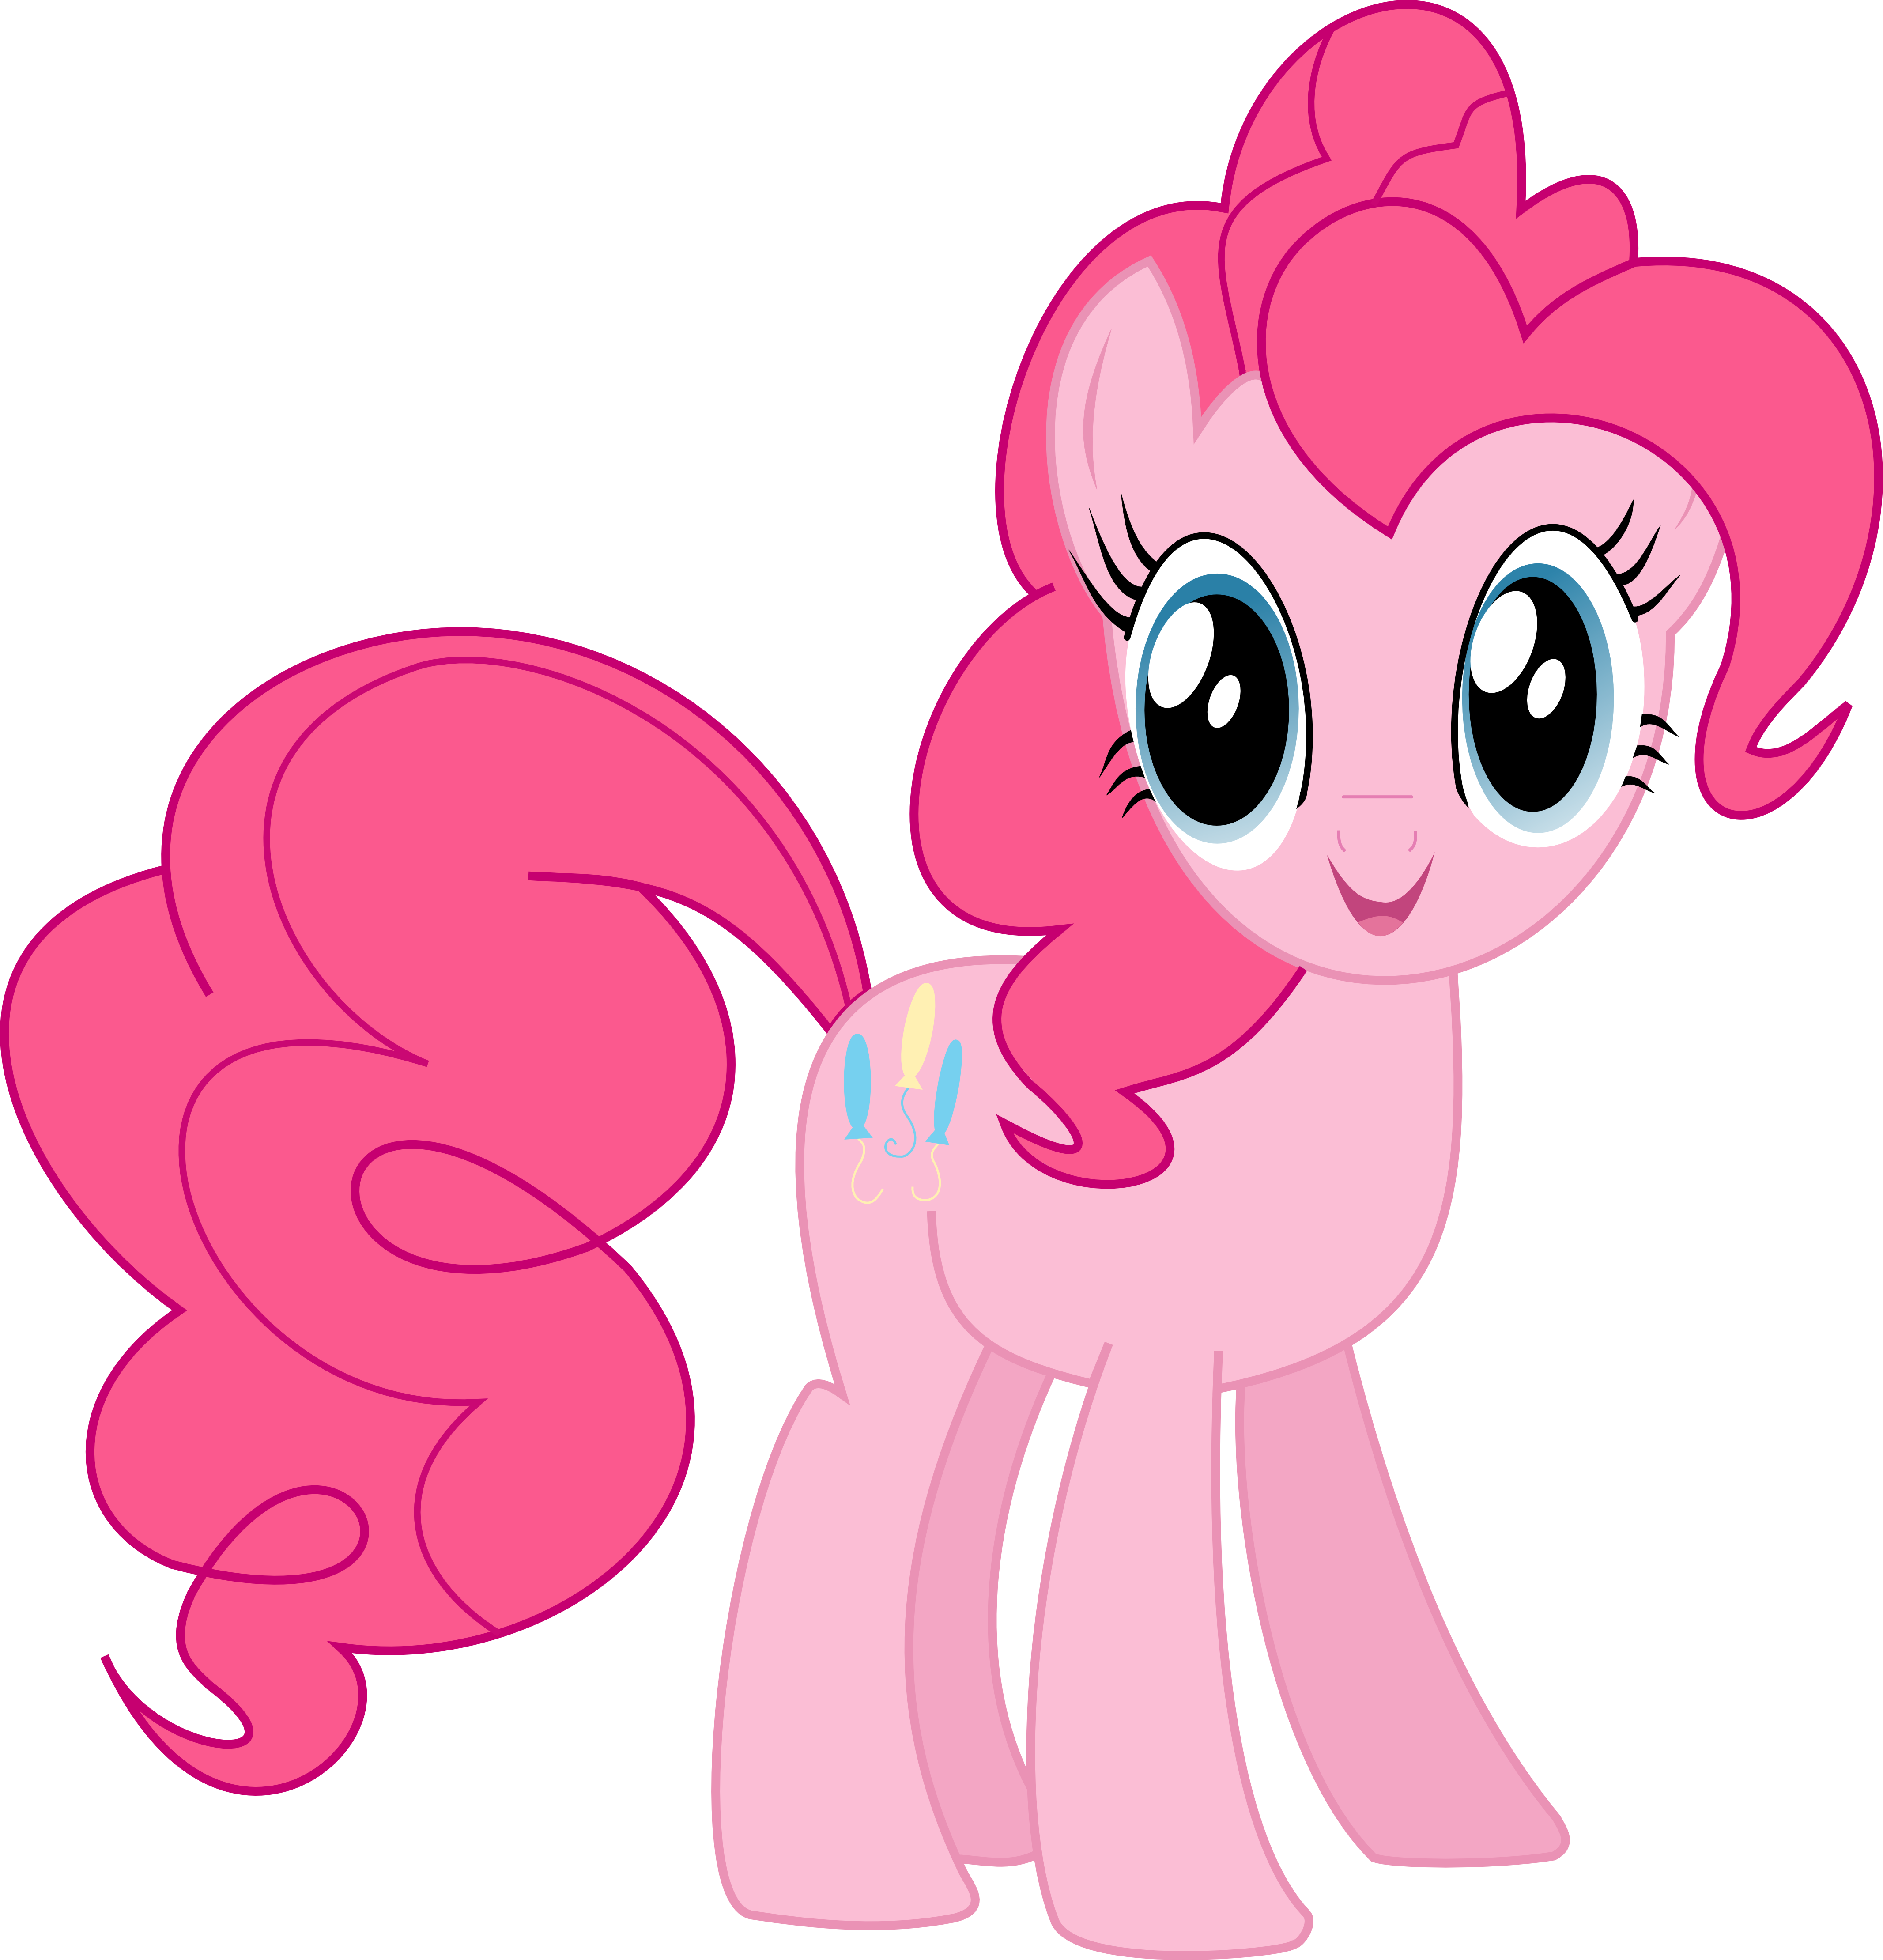 Pinkie Pie smiling vector by Pangbot